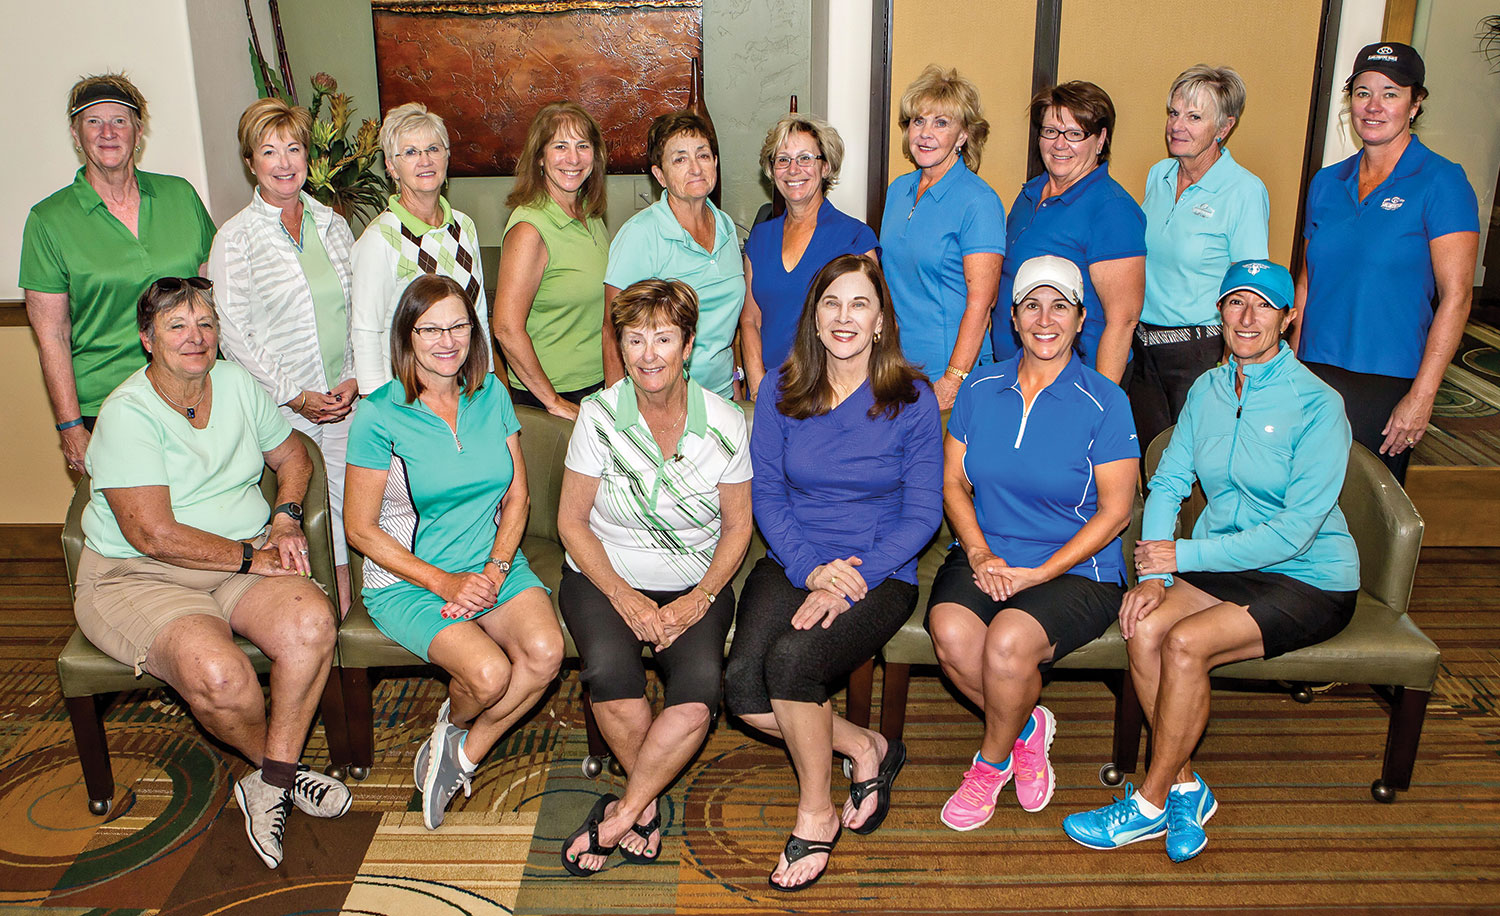 Green Team, left to right front row: Cheri Alfrey, Jeanne Osterlund, Mary Snowden; back row: Jeanne Jensen, Colleen Carey, Marlyce Myka, Carol Mihal, Sue Wells; Blue Team left to right front row: Brenda Armenia, Janice Mihora, Pilar Borm; back row: Theresa Hect, Bonnie Stark, Nancy Galant, Connie Klappenbach, Alex Anna.